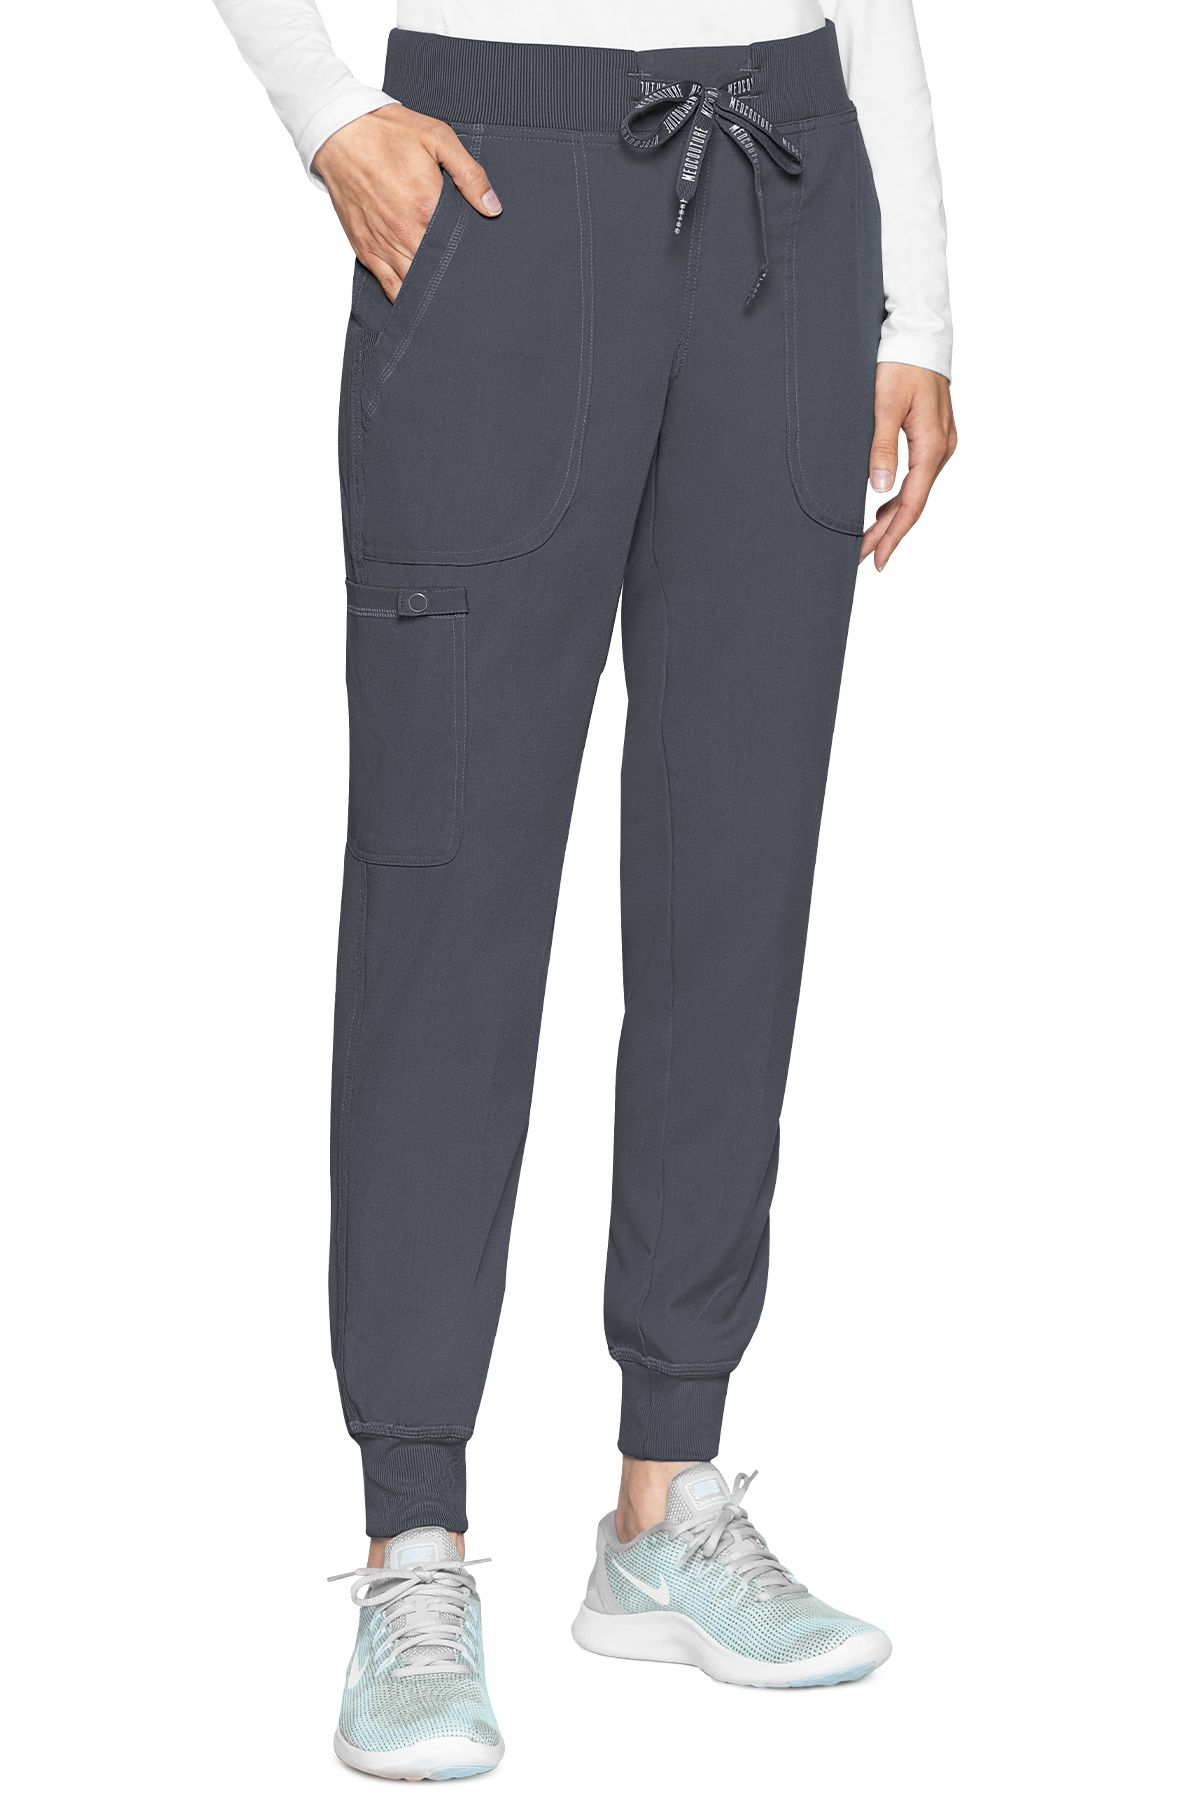 Med Couture Touch Jogger Yoga Pant-Med Couture Touch